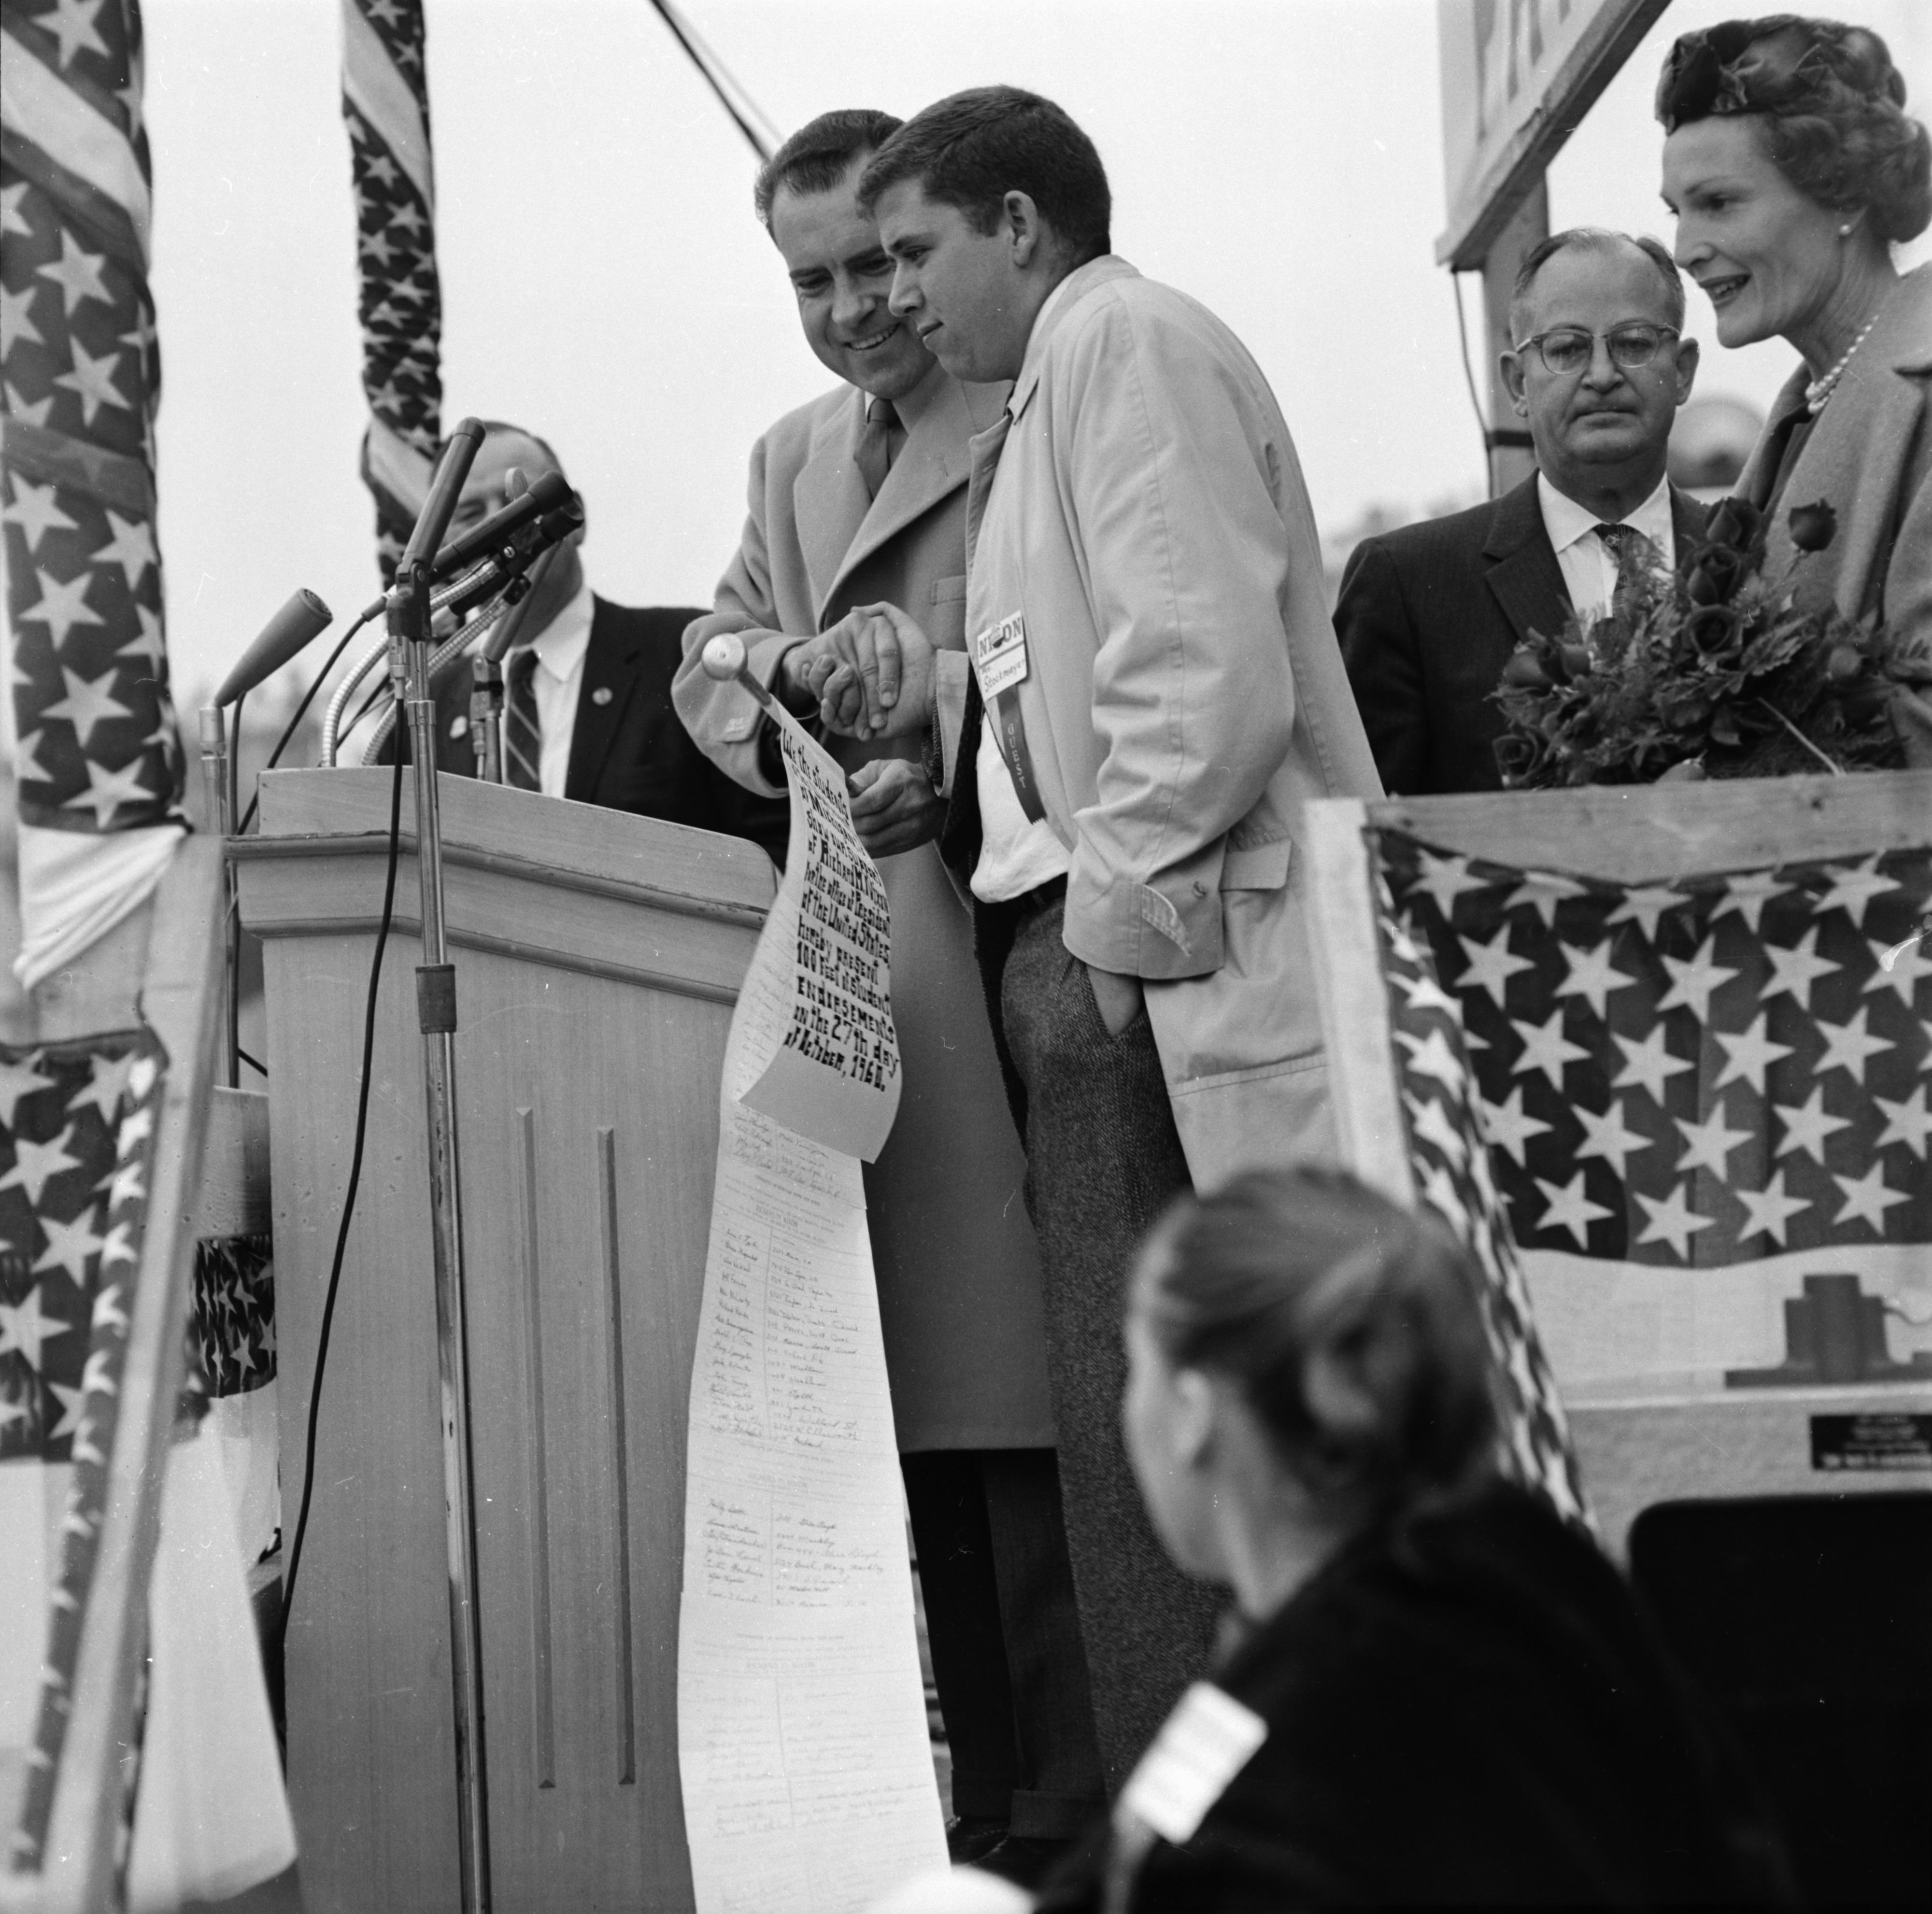 Richard Nixon with scroll signed by student supporters, October 27, 1960 image